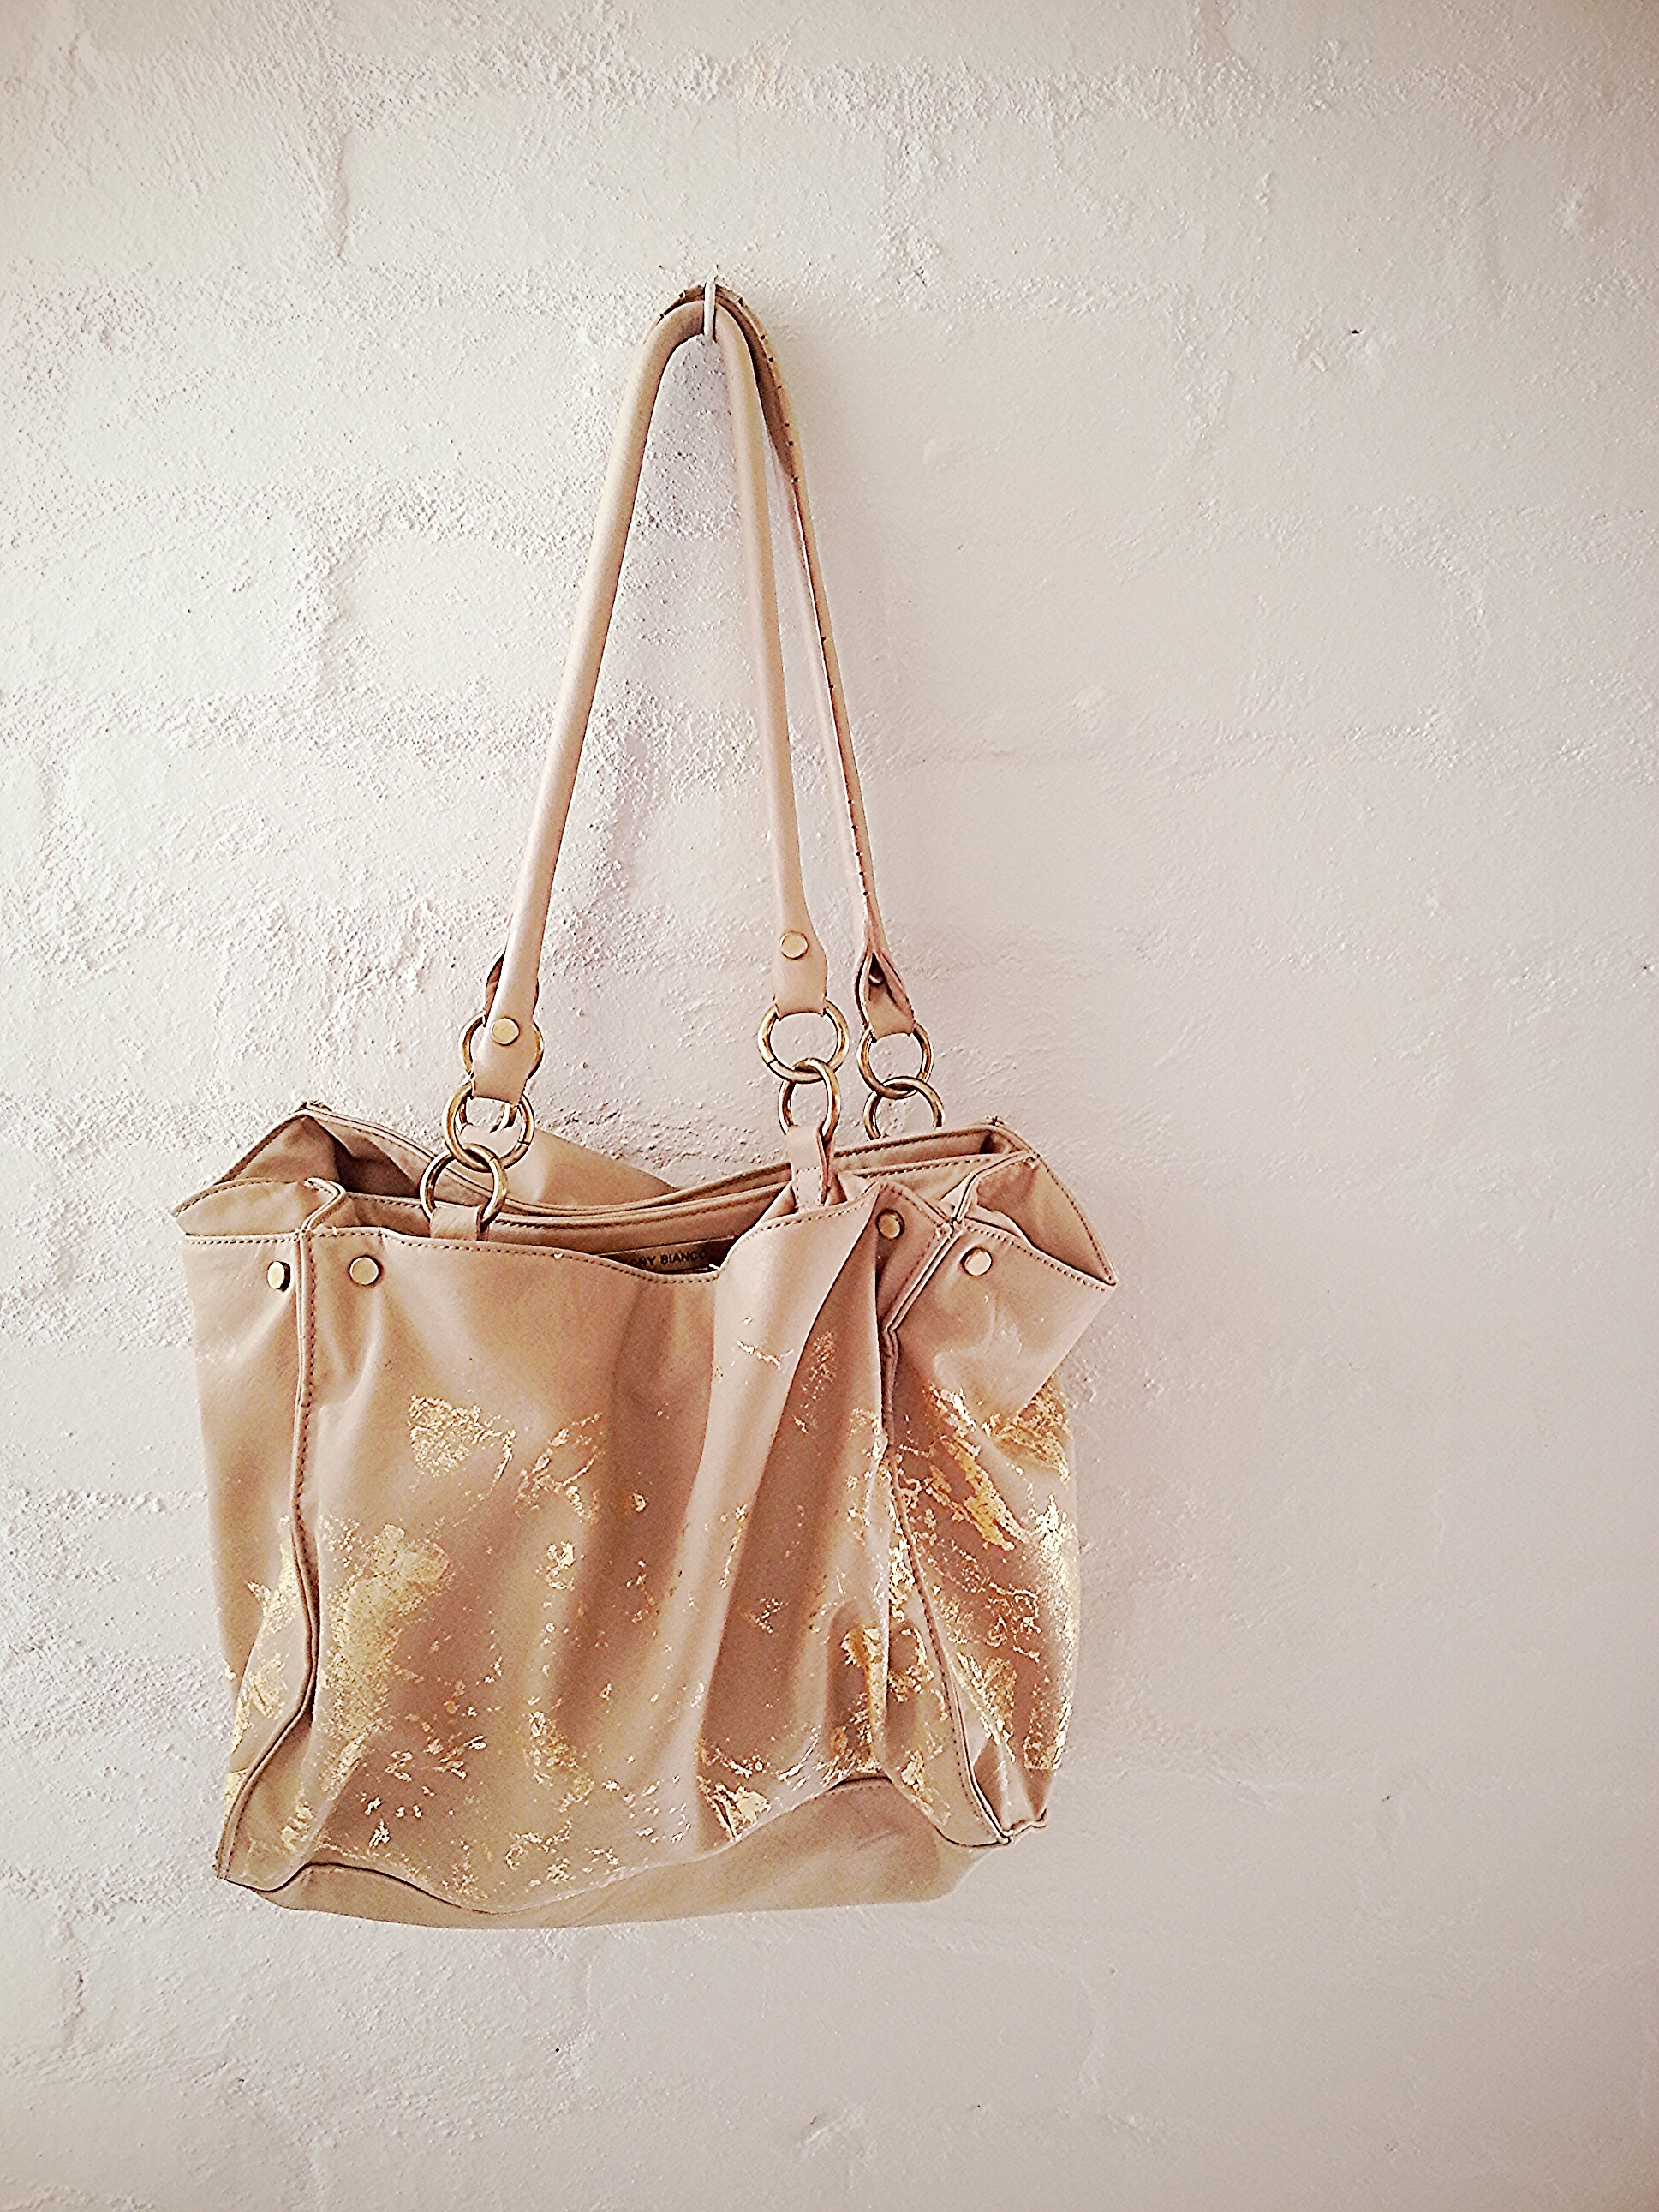 Golden Goodness Handbag!